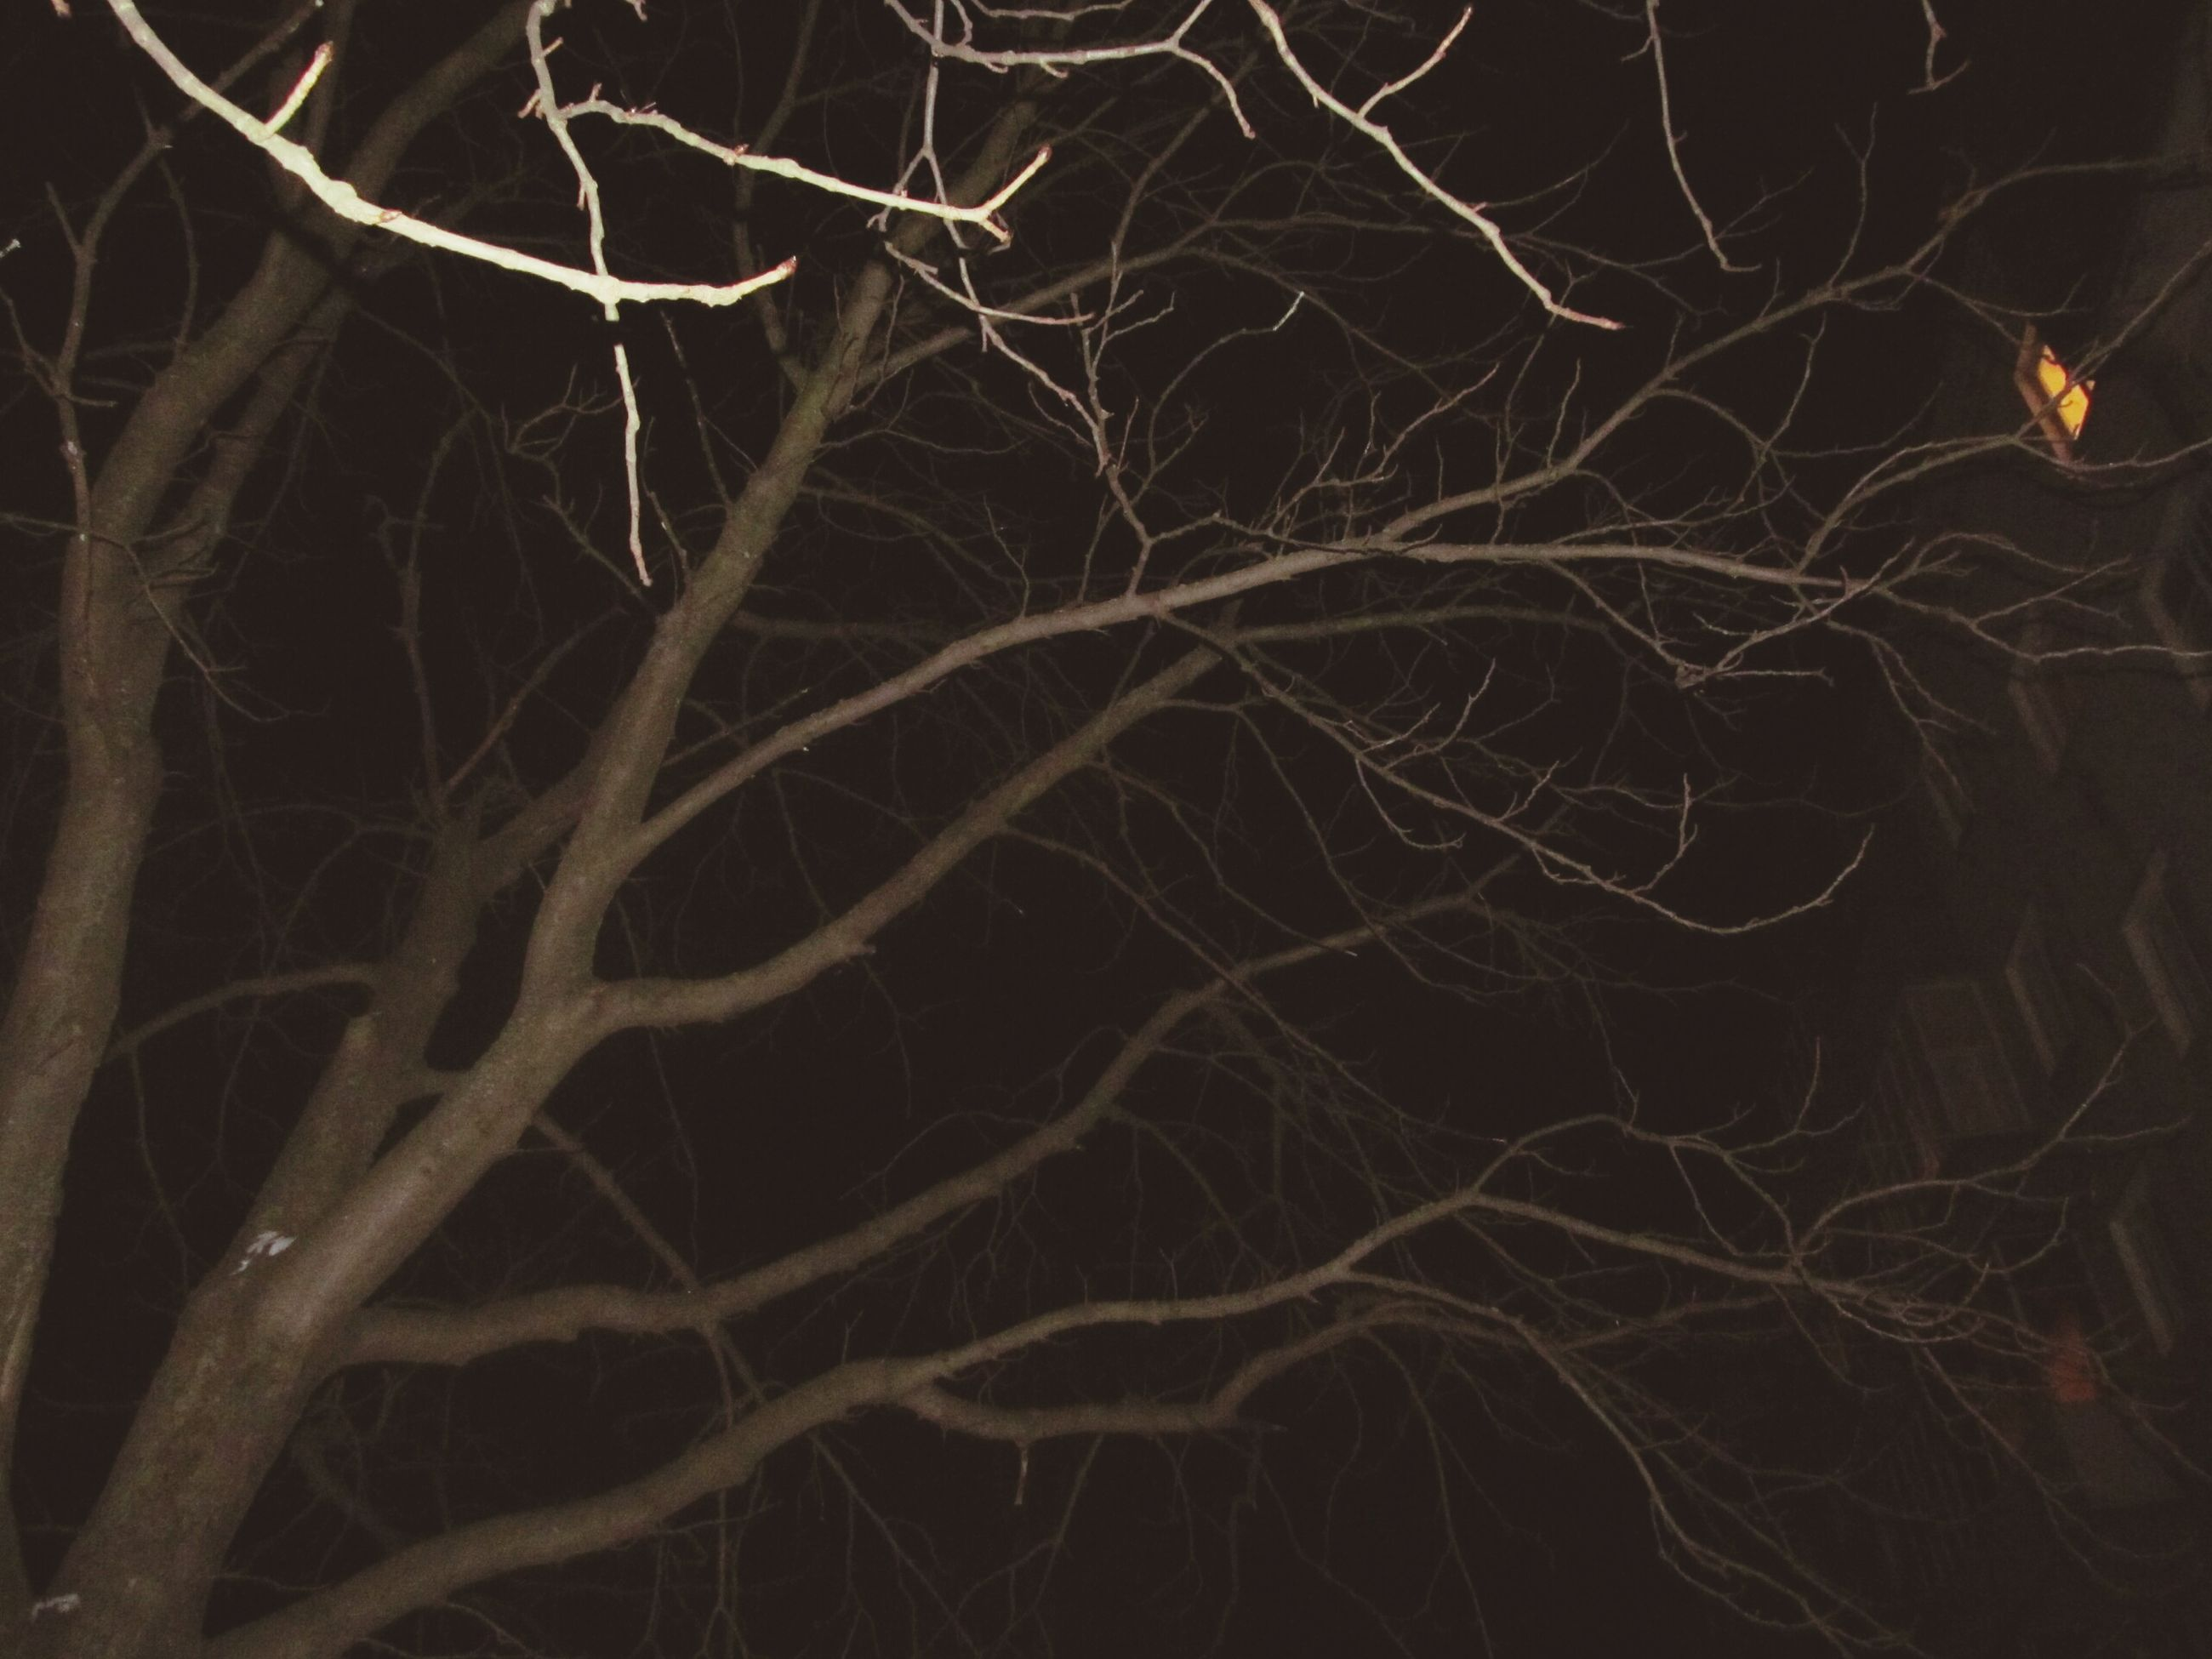 night, illuminated, dark, bare tree, glowing, low angle view, light - natural phenomenon, long exposure, abstract, branch, outdoors, backgrounds, no people, black background, light, sky, full frame, tree, lighting equipment, nature